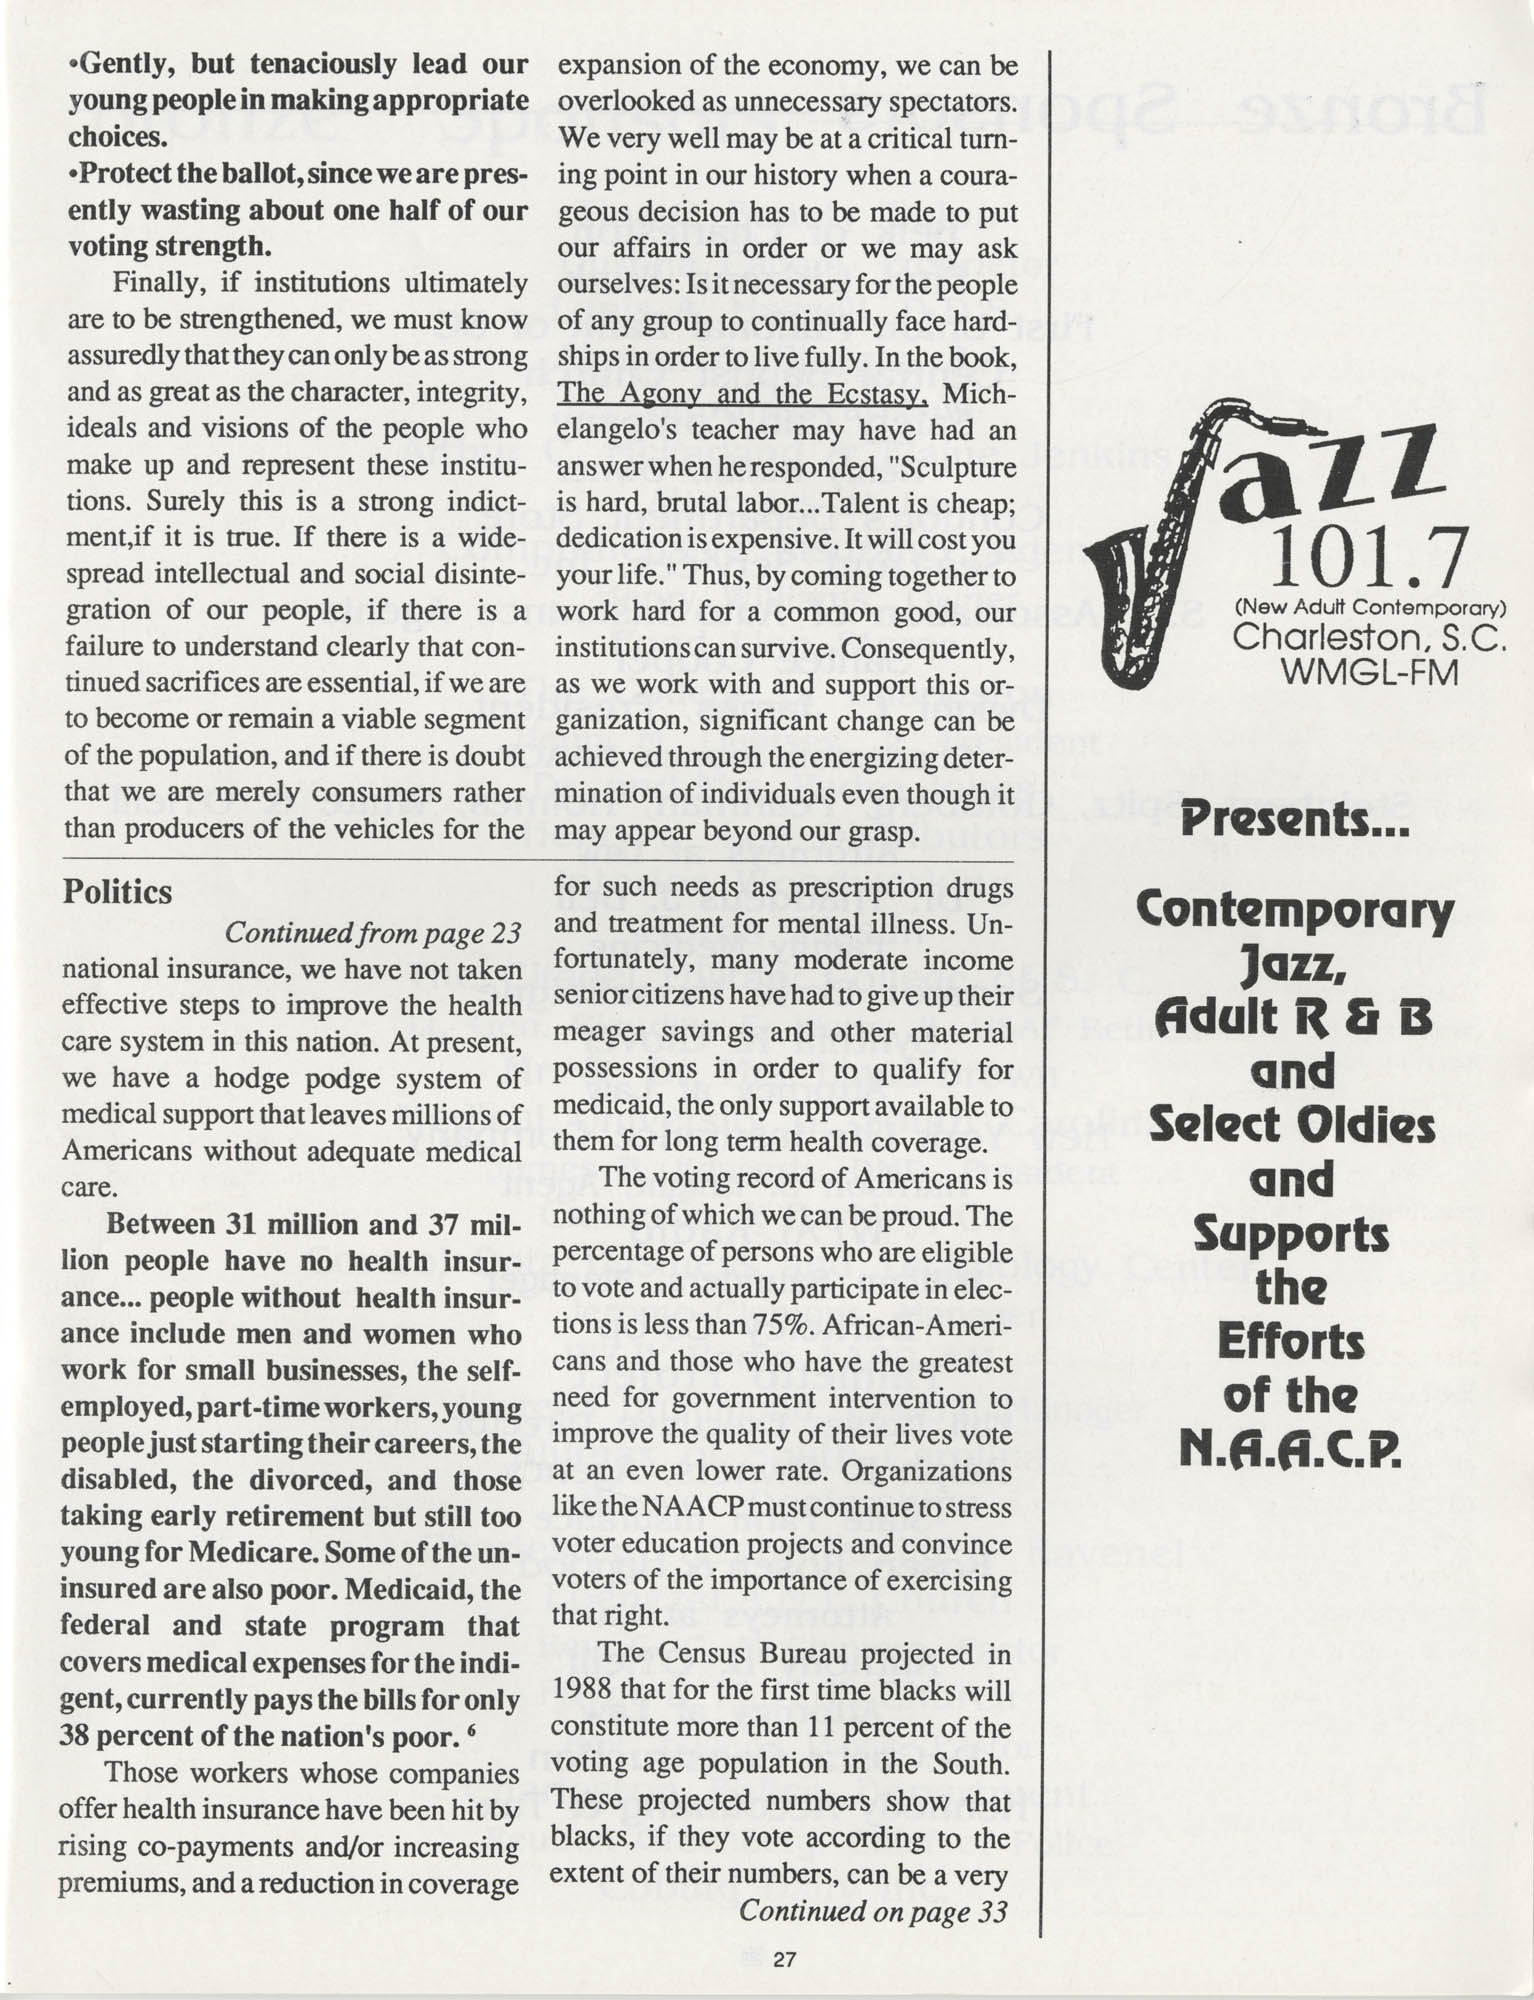 1990 NAACP Freedom Fund Magazine, Charleston Branch of the NAACP, 74th Anniversary, Page 27